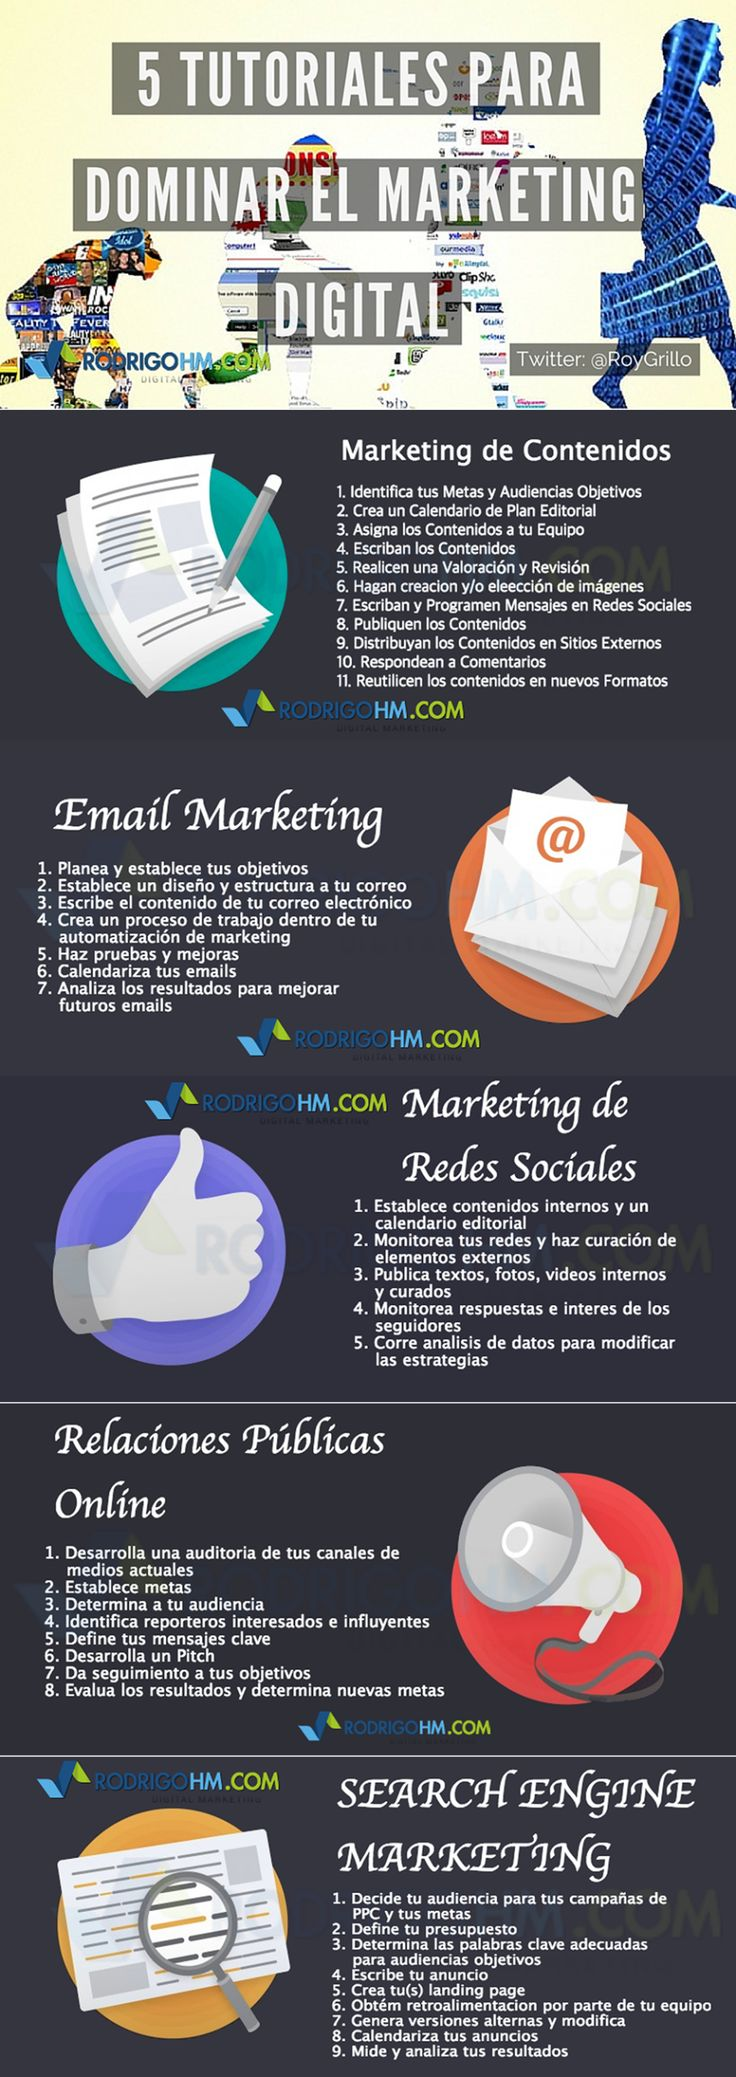 5 tutoriales para dominar el Marketing Online #infografia #infographic…